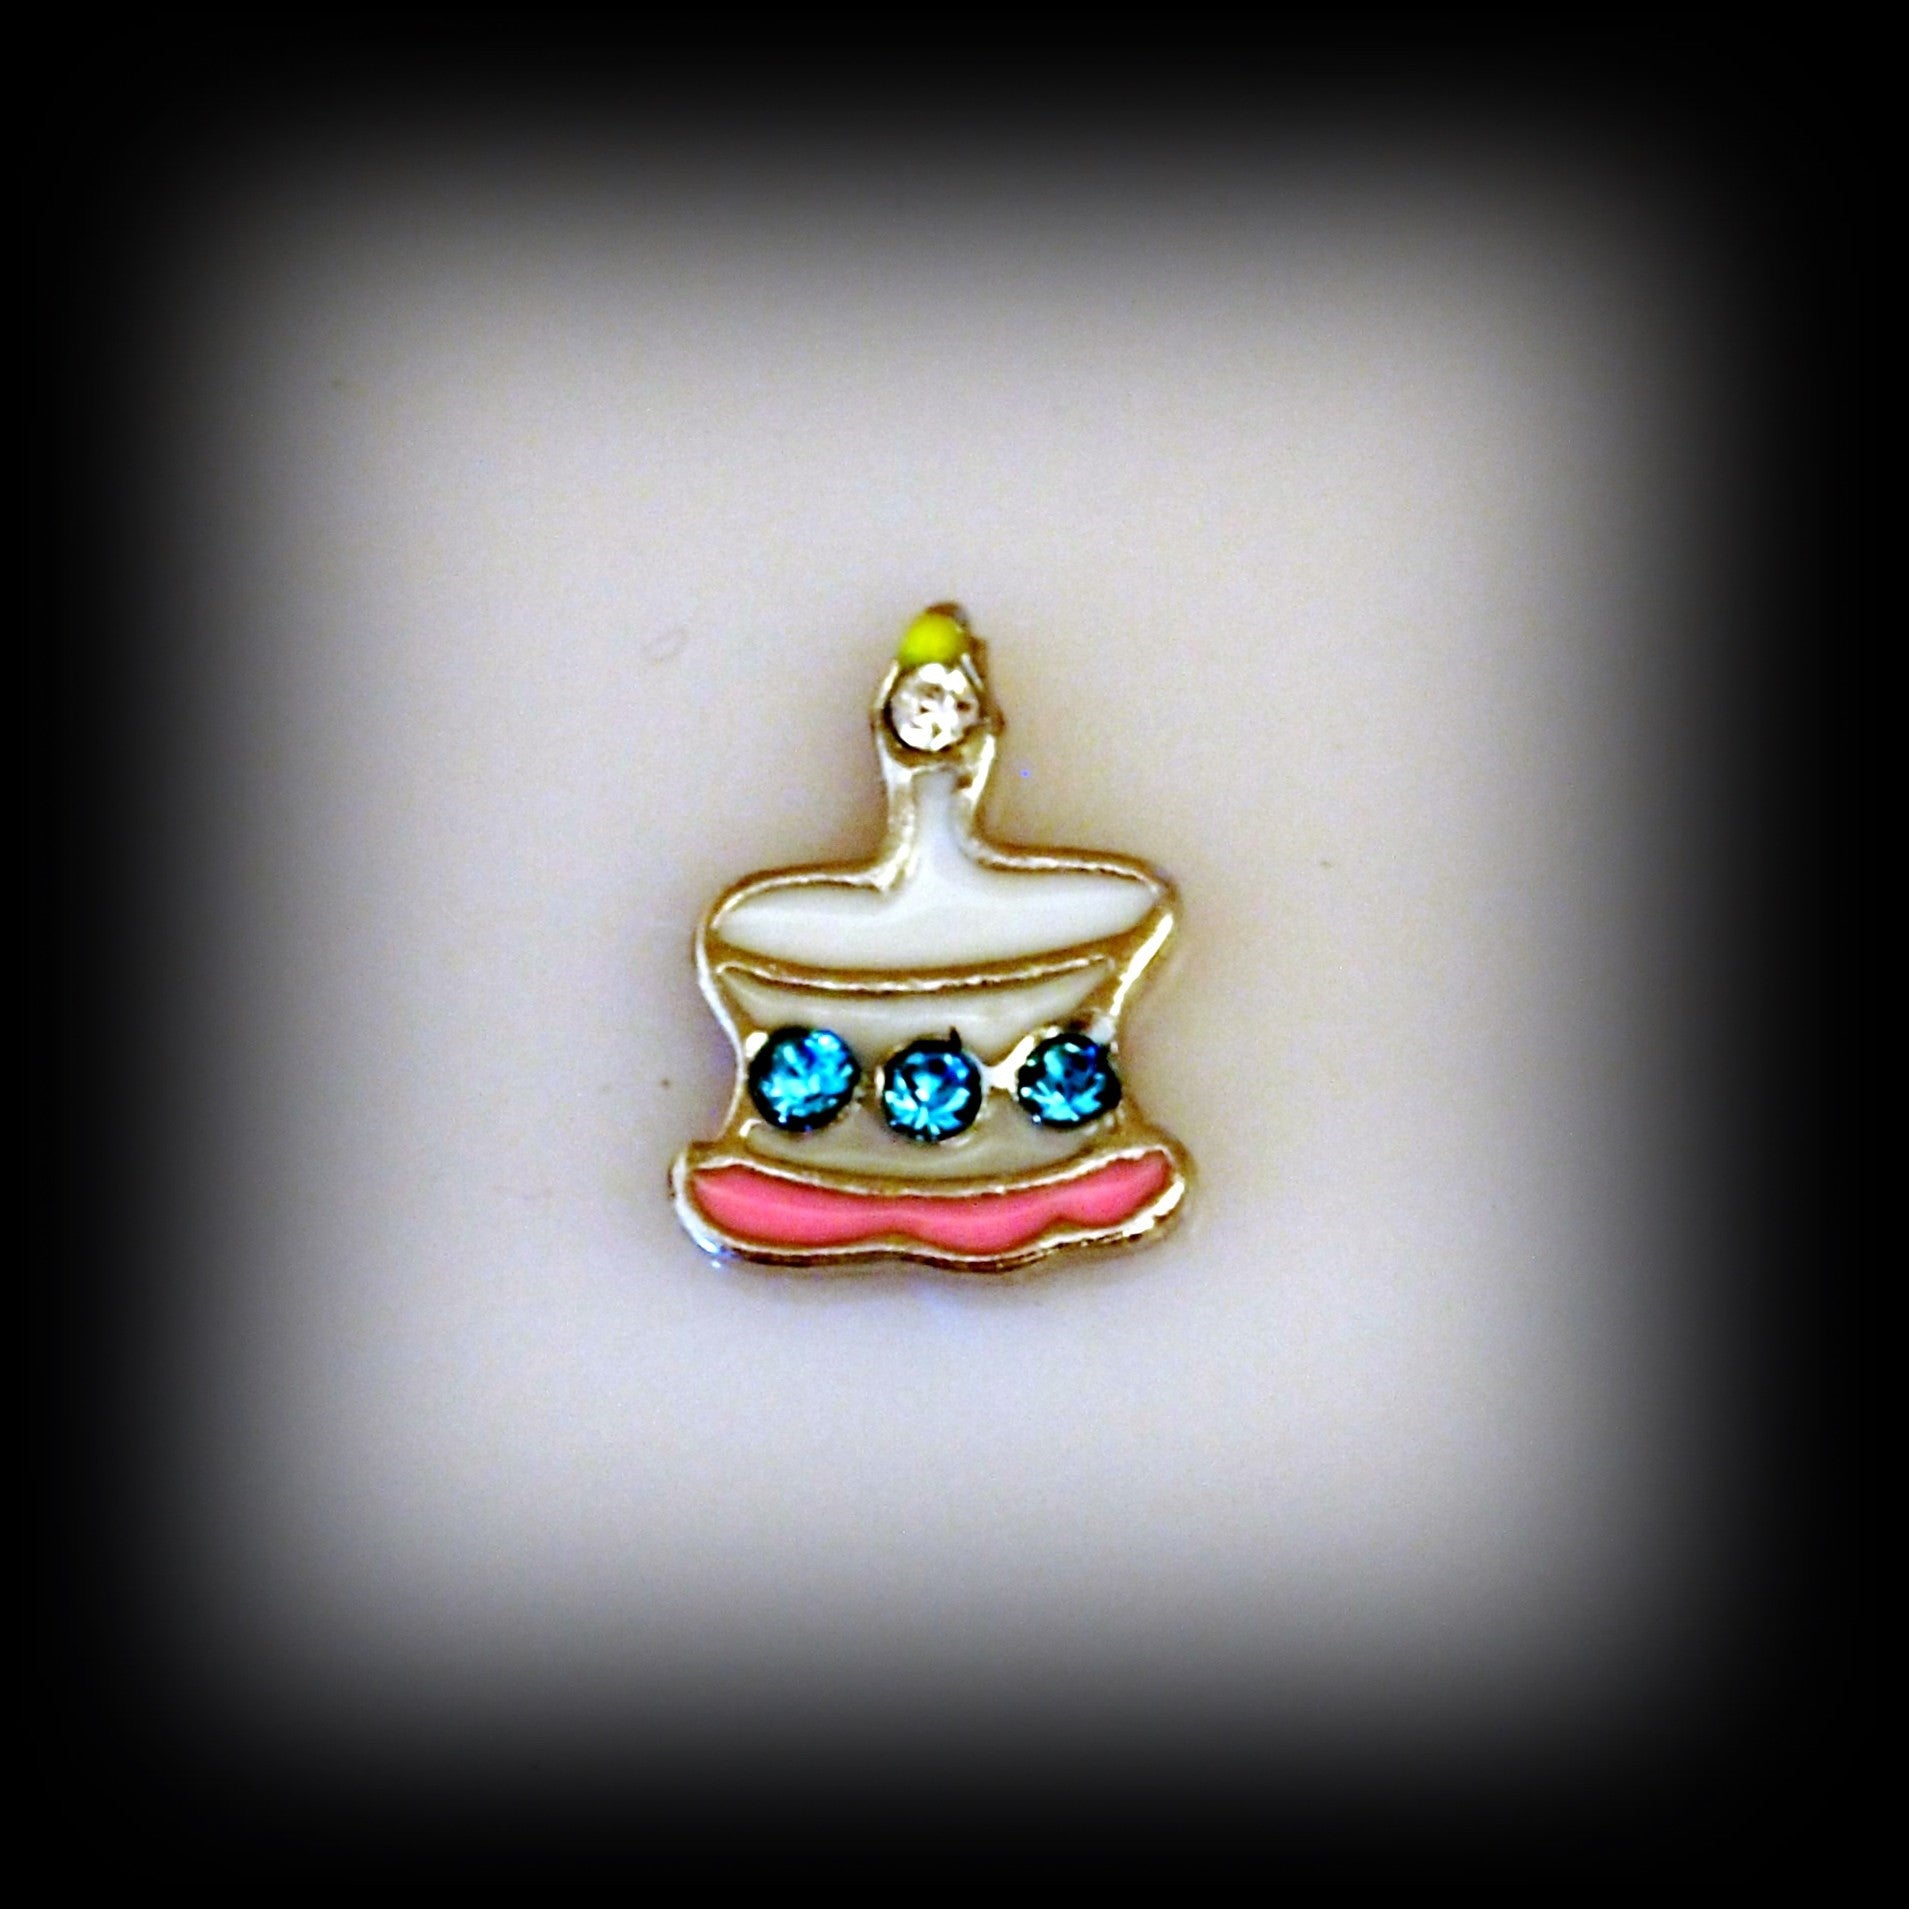 Crystal Birthday Cake Floating Charm - Find Something Special